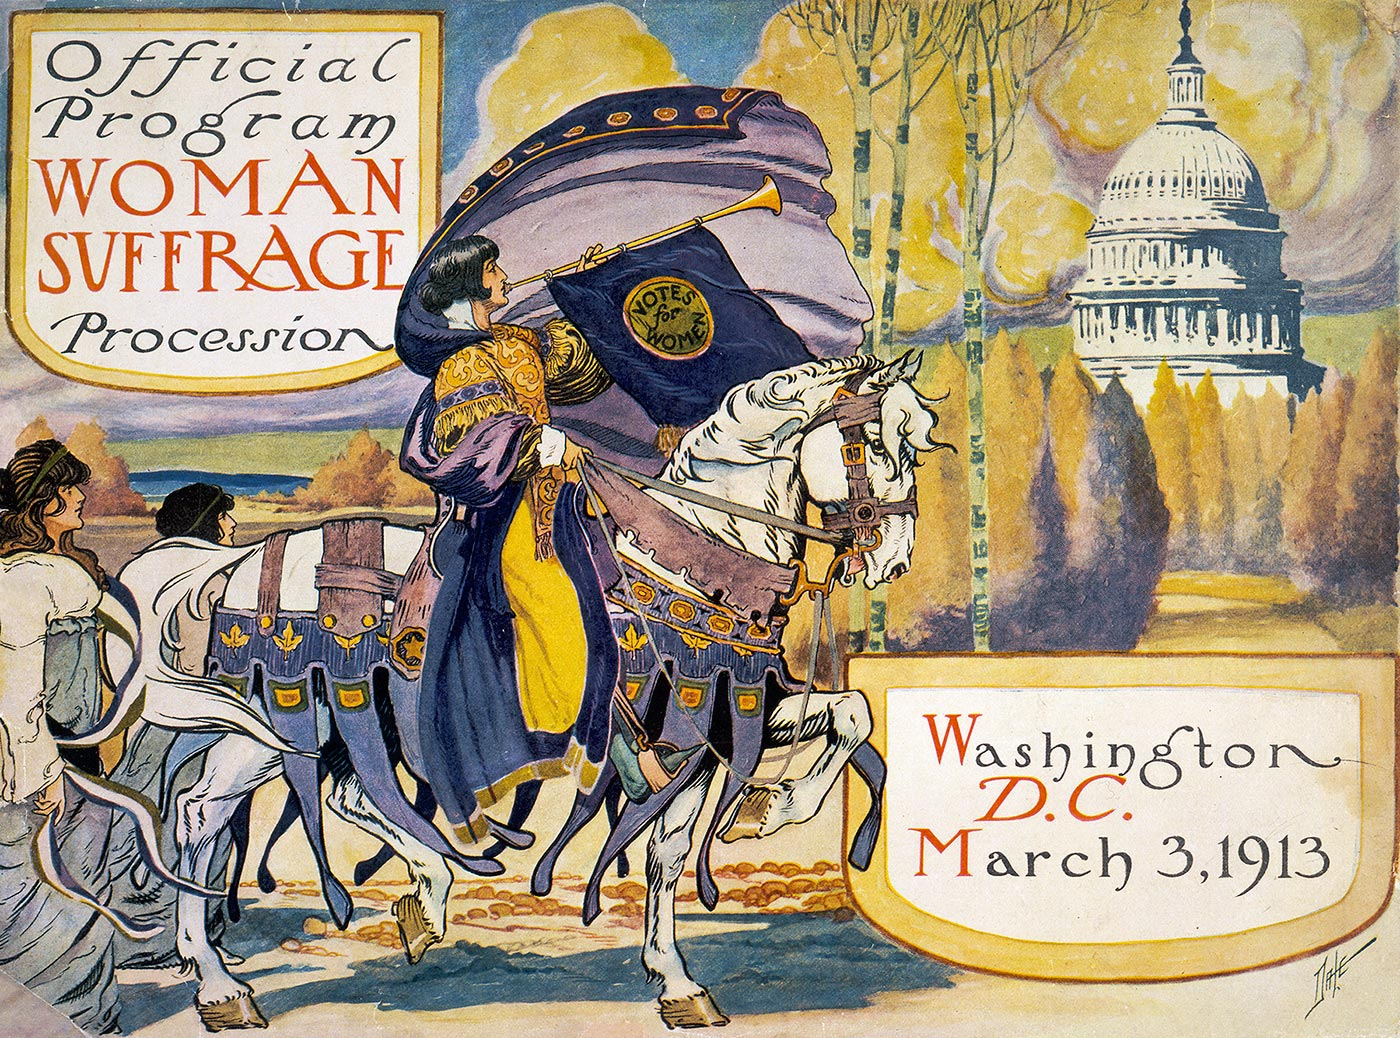 The cover of the programme for a procession of the National American Women's Suffrage Association, March 1913